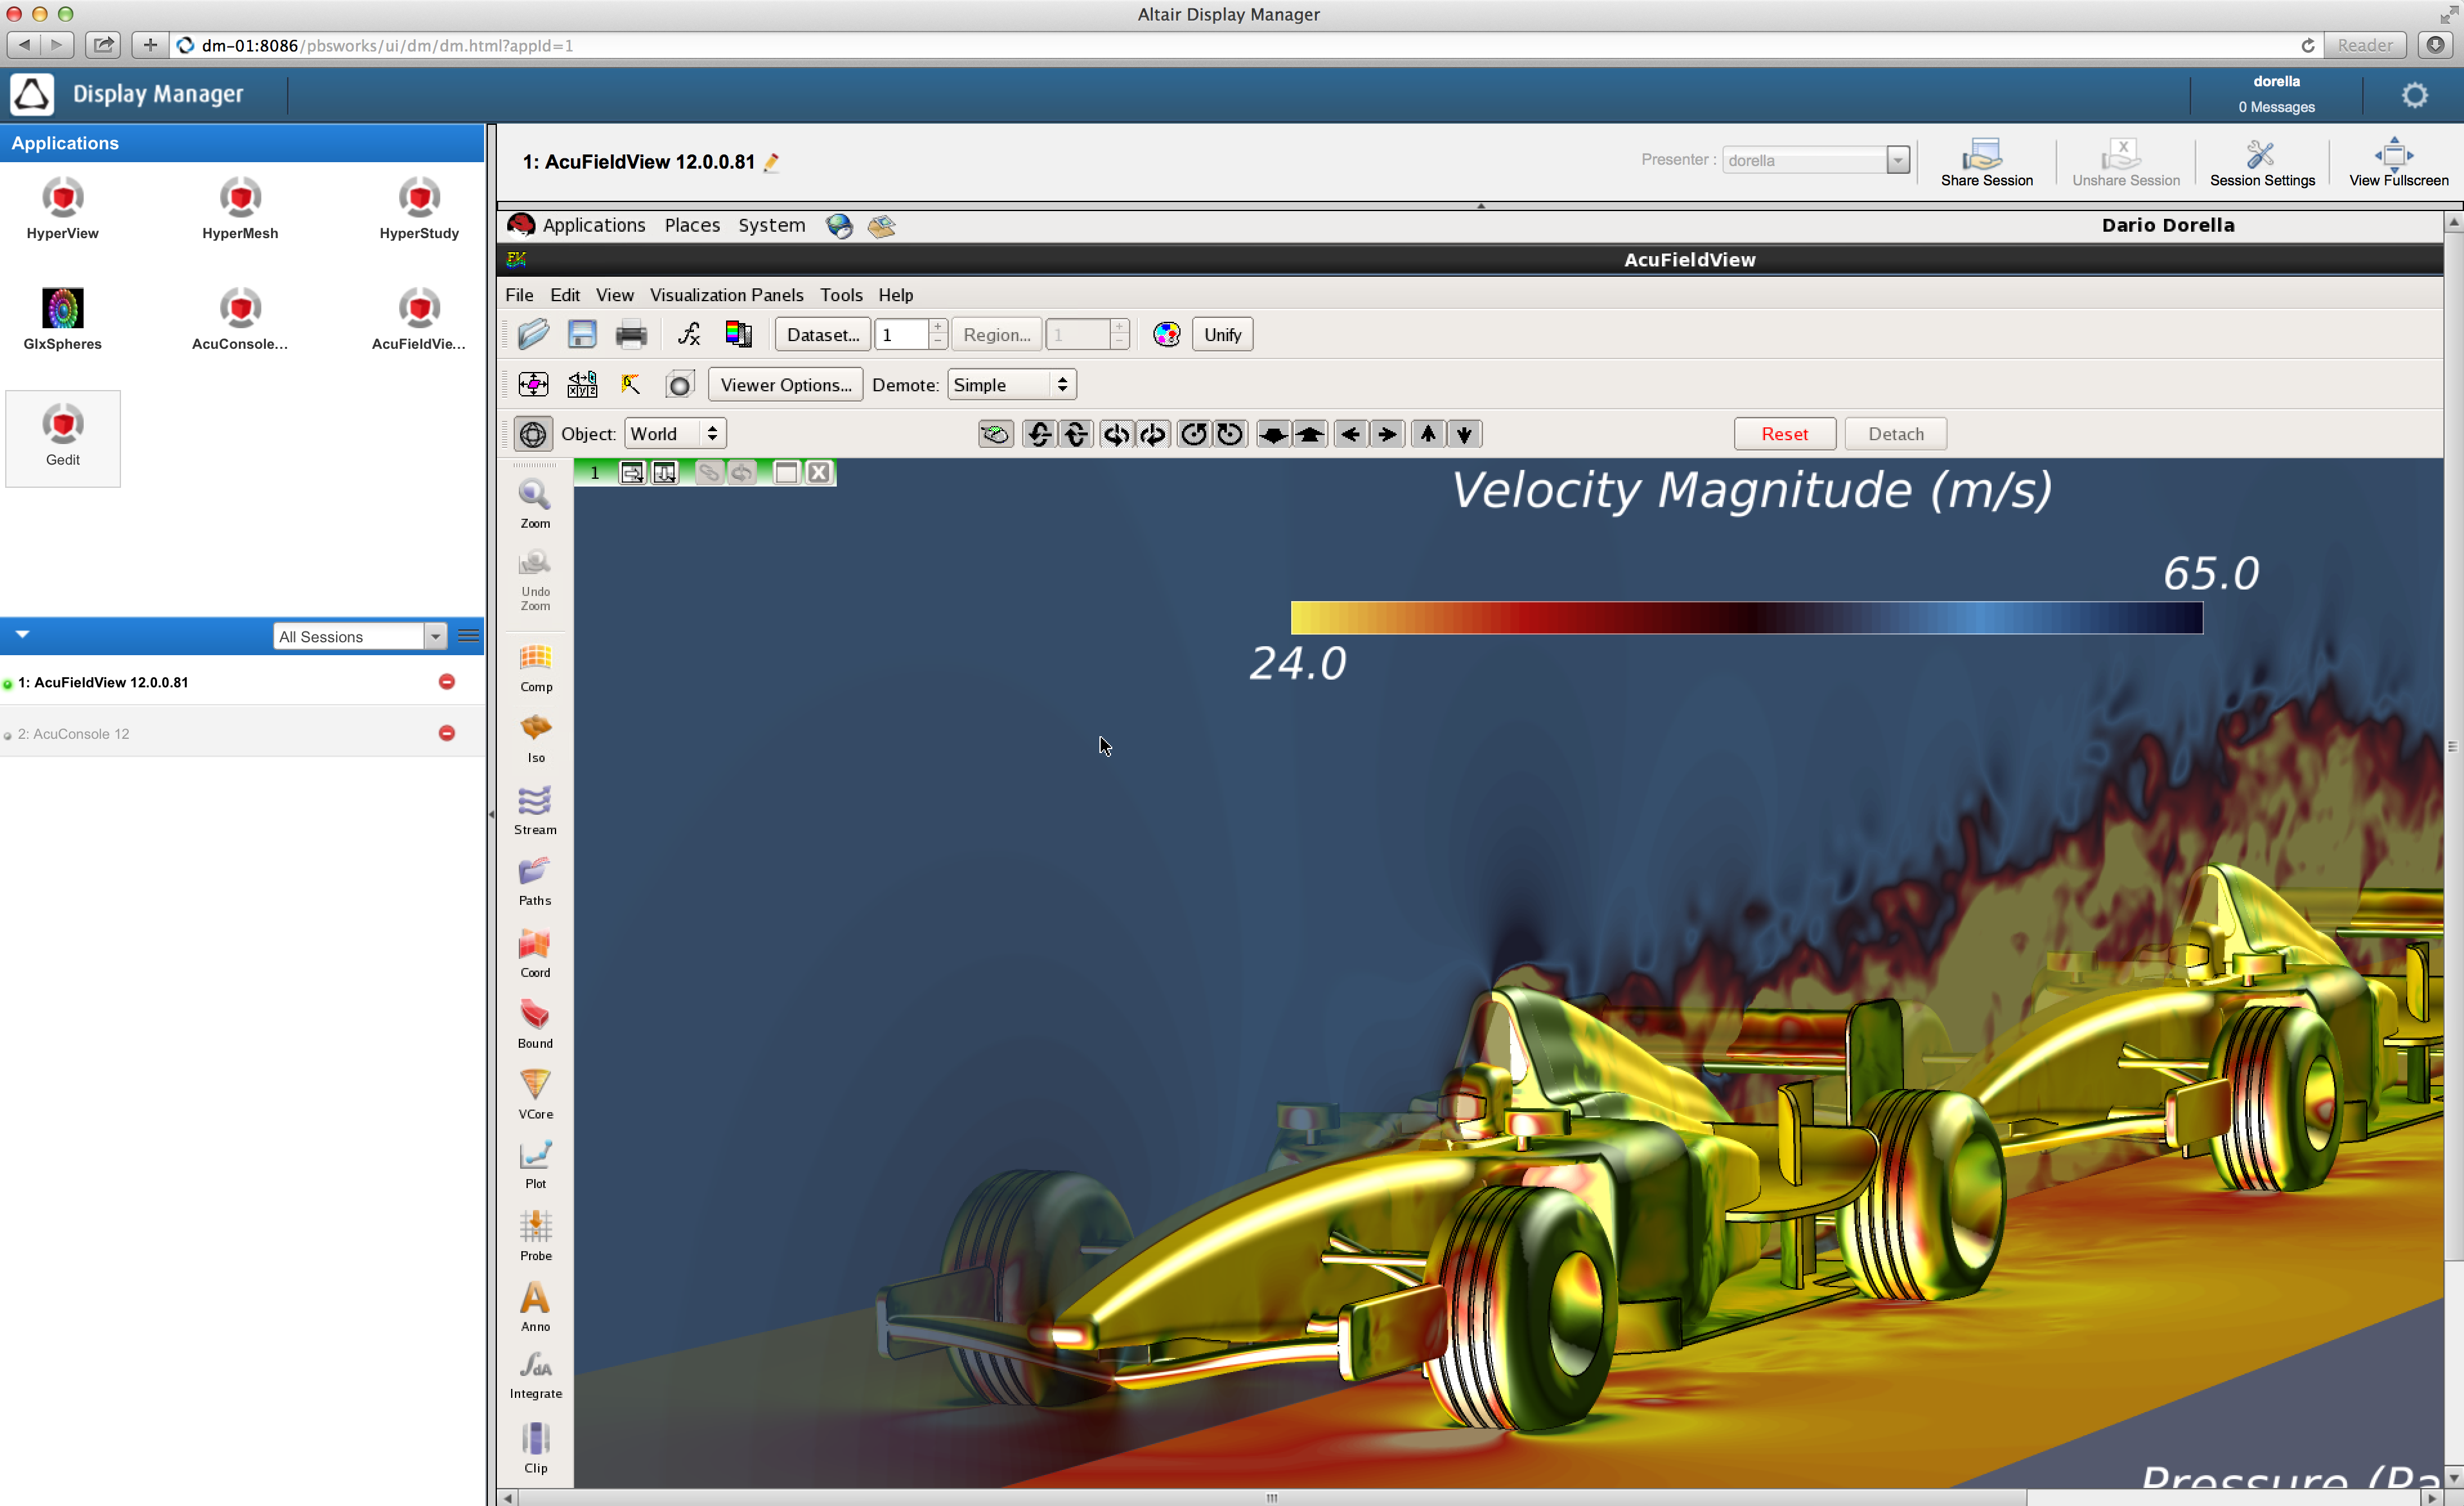 Webinar: Visualize it! From Zero to Remote Visualization with Display Manager